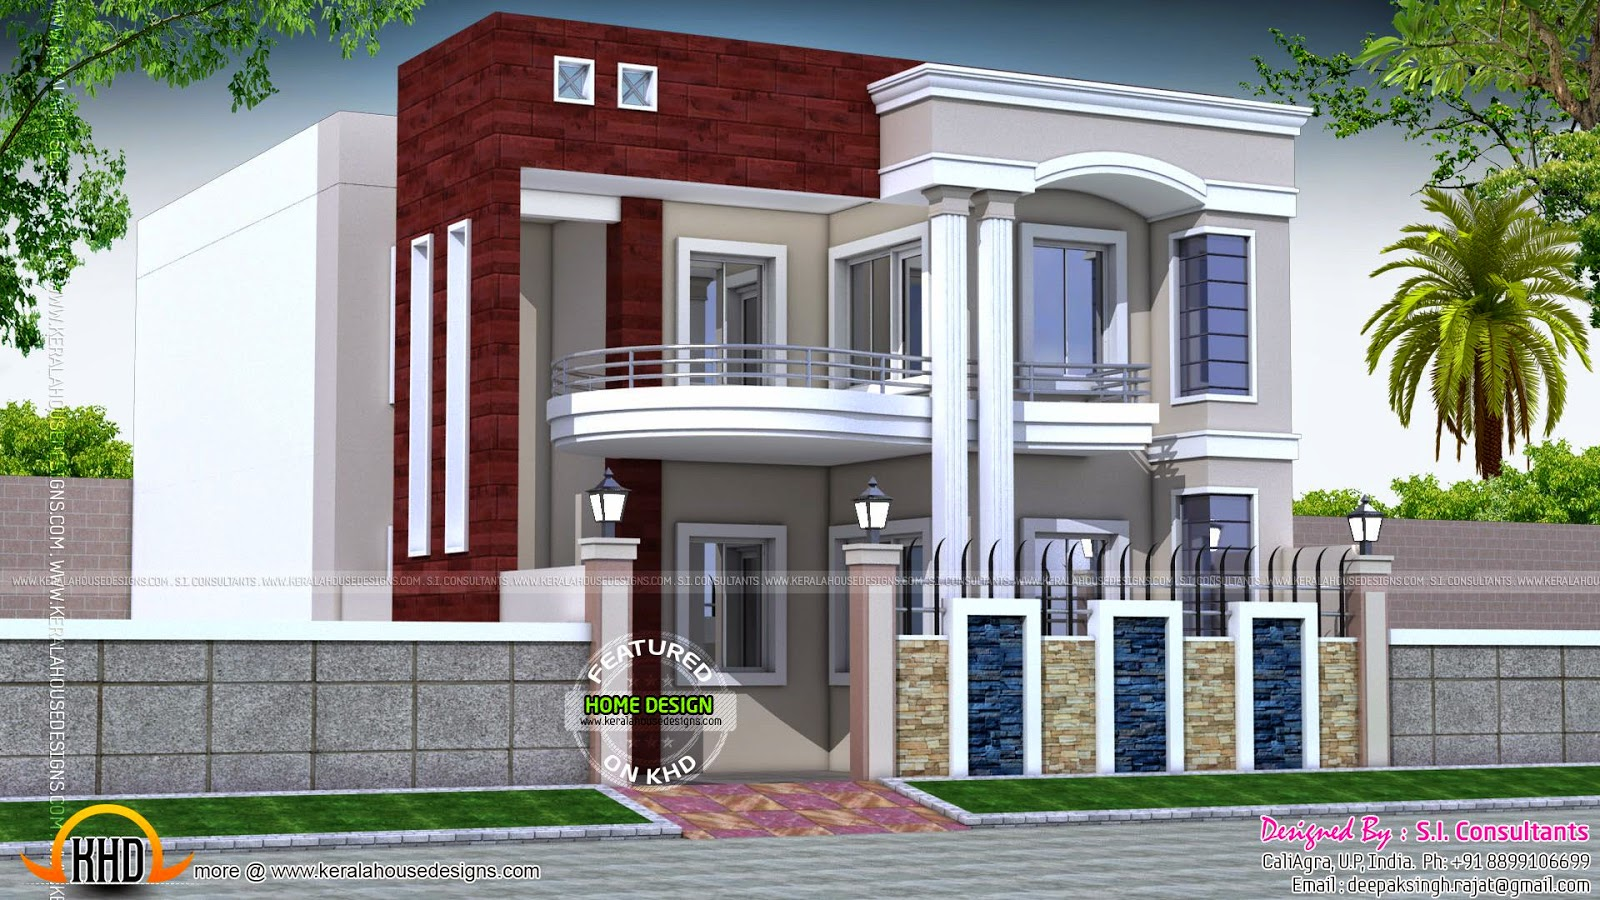 House design in north india kerala home design and floor Homes design images india